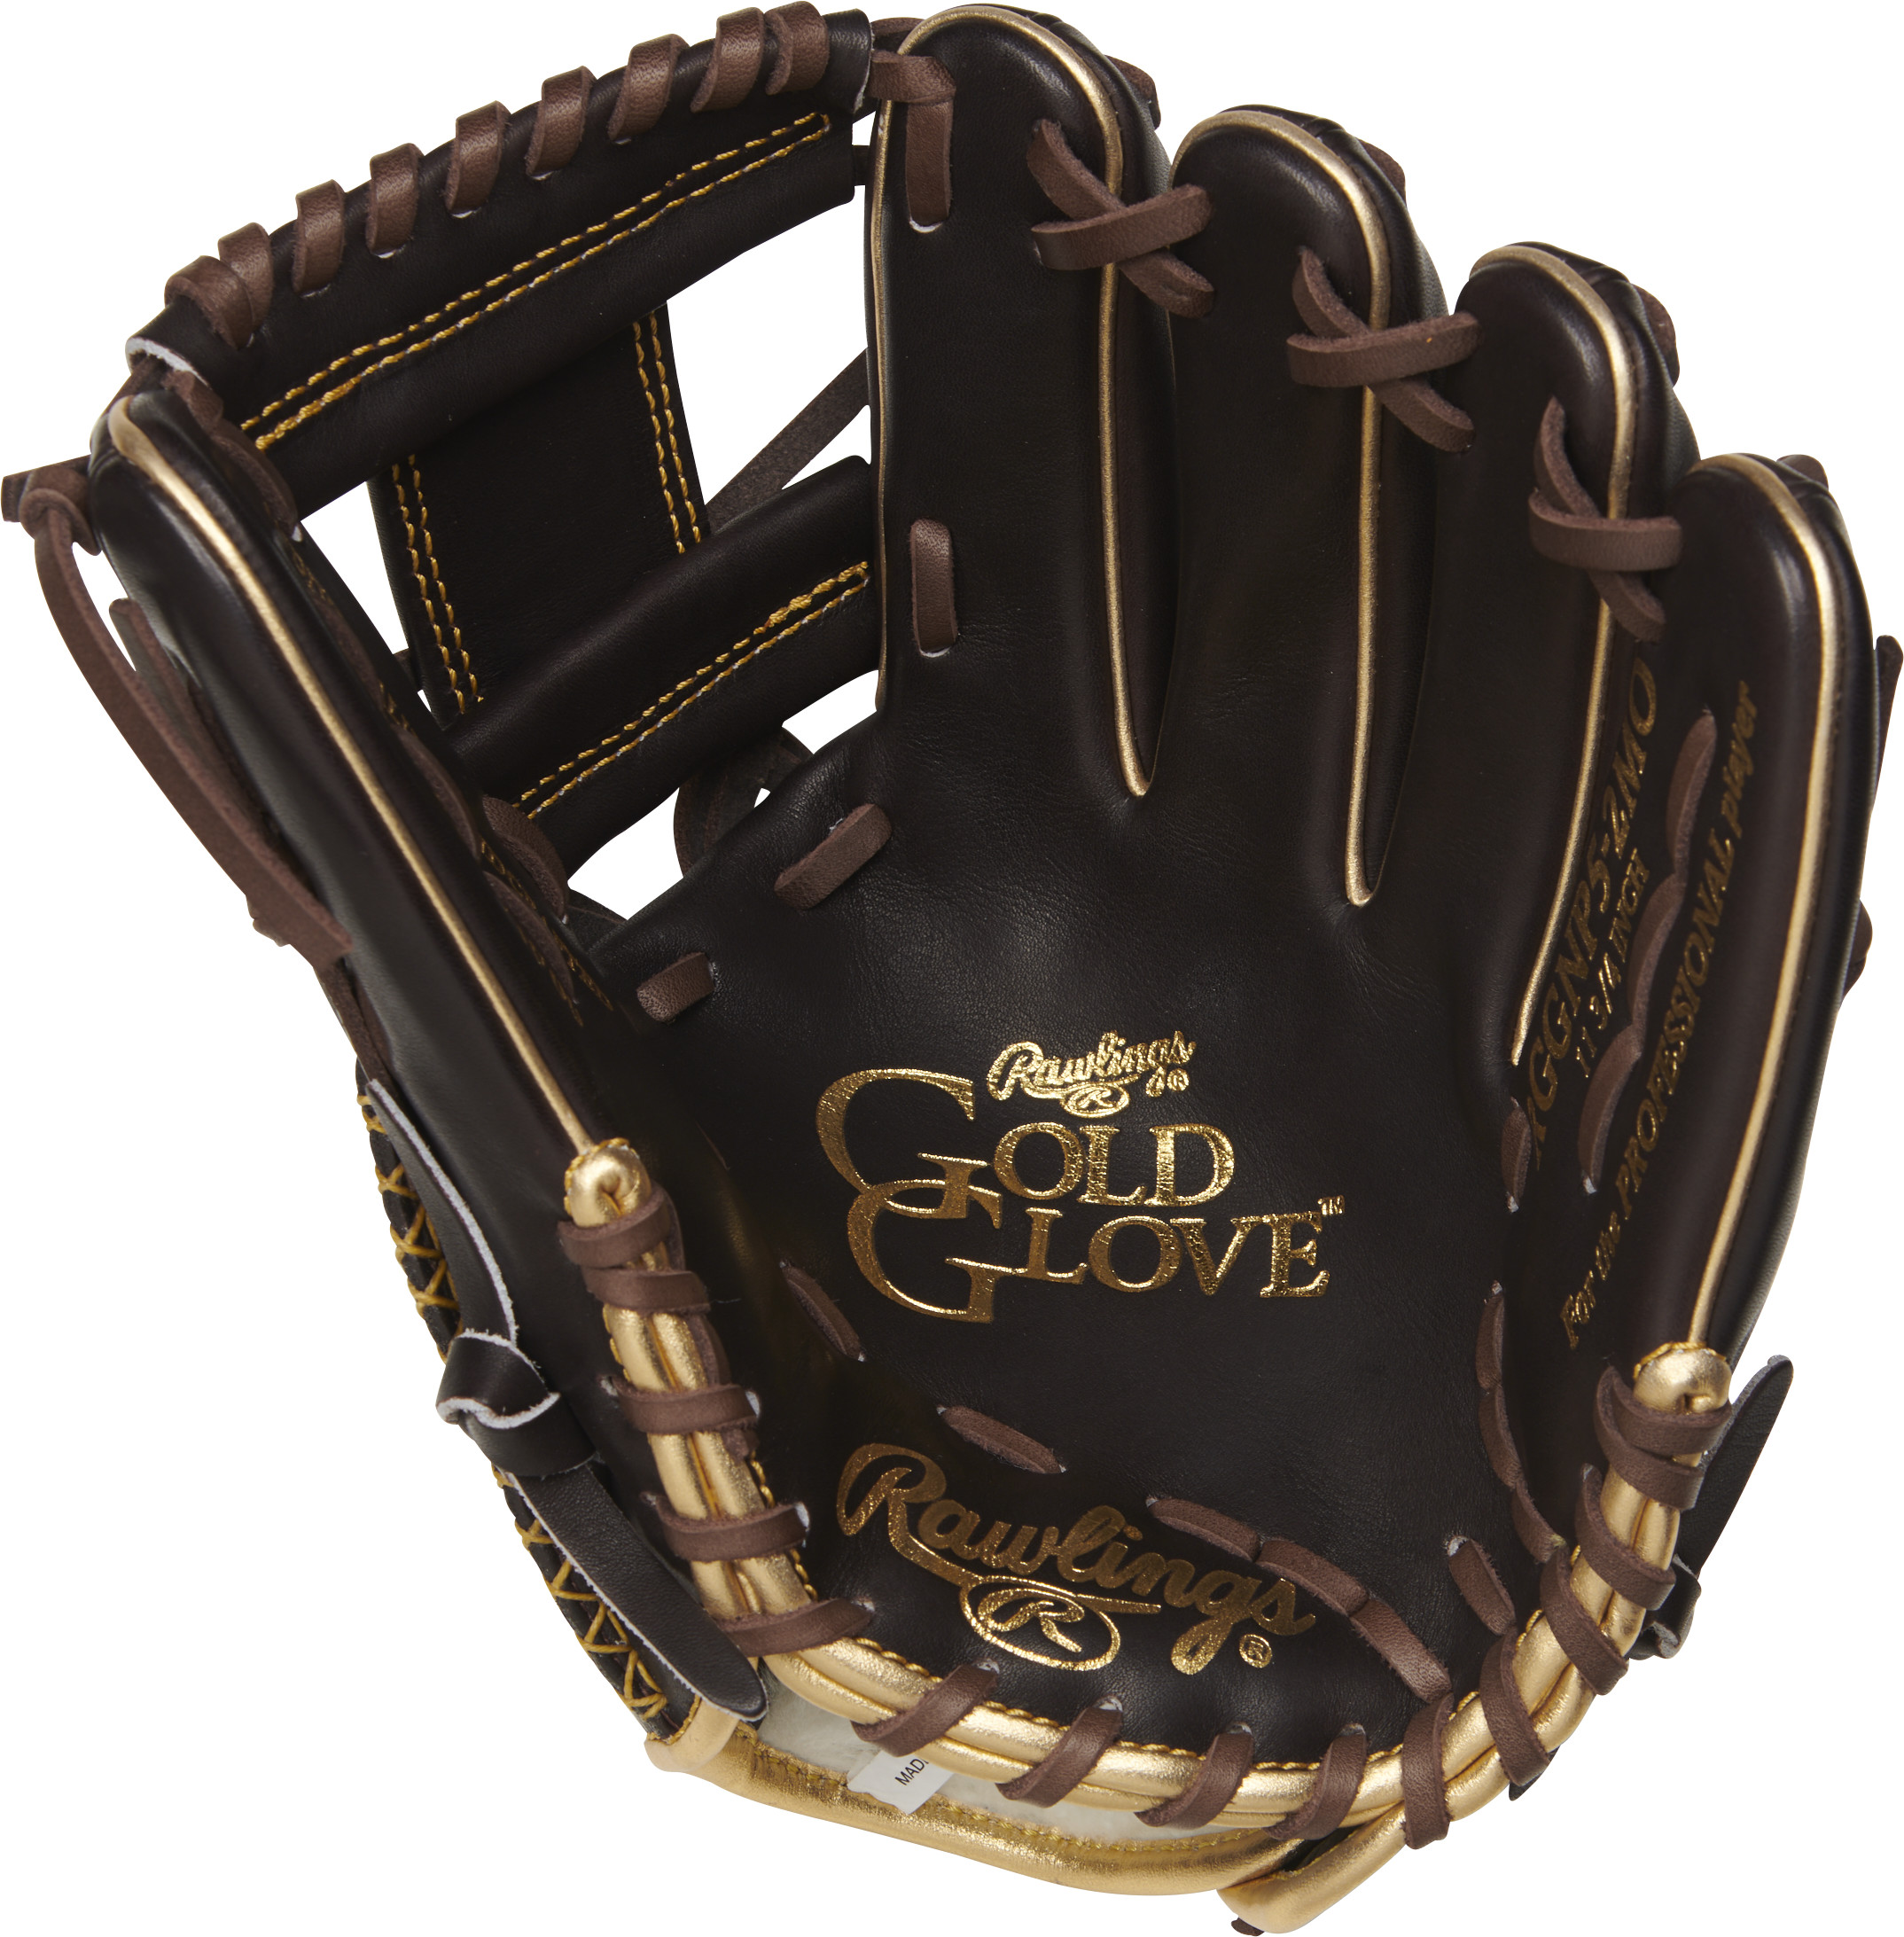 http://www.bestbatdeals.com/images/gloves/rawlings/RGGNP5-2MO-1.jpg